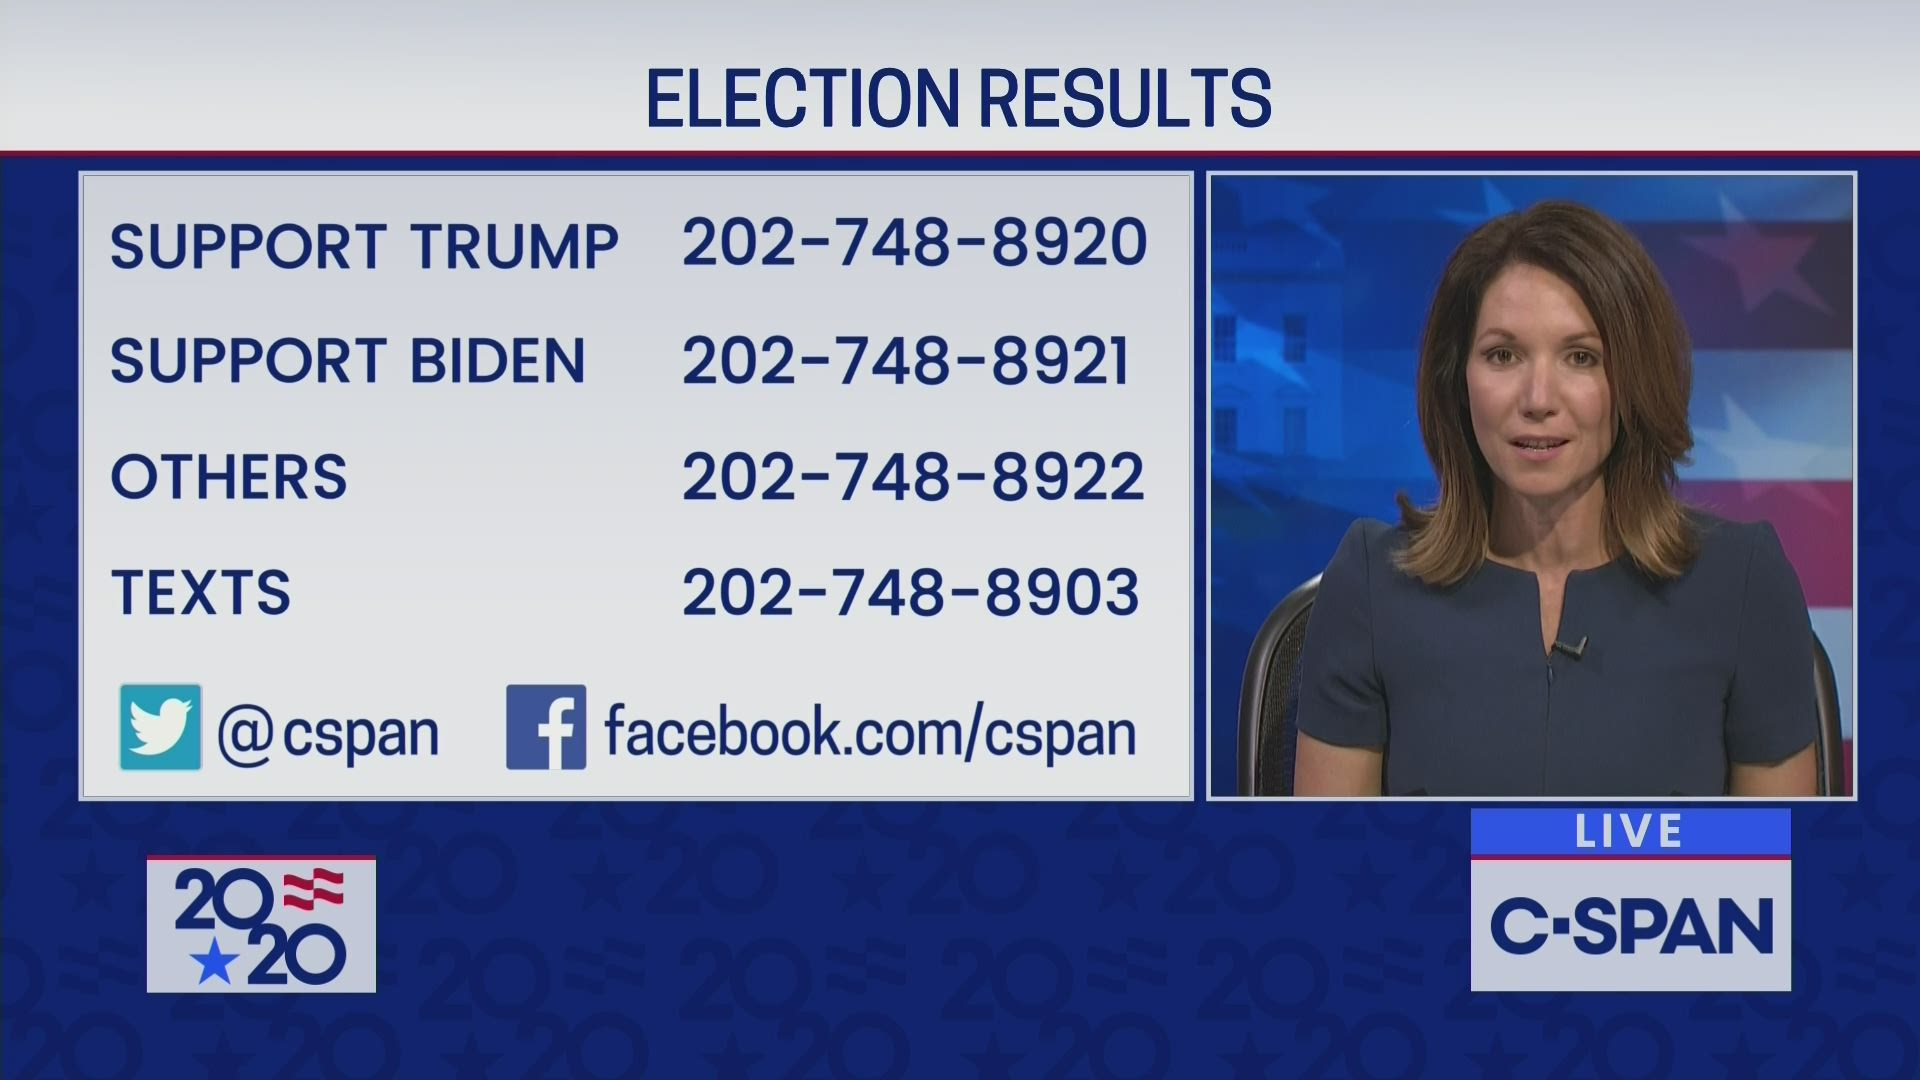 C-SPAN Coverage of Ongoing Election Results | C-SPAN.org